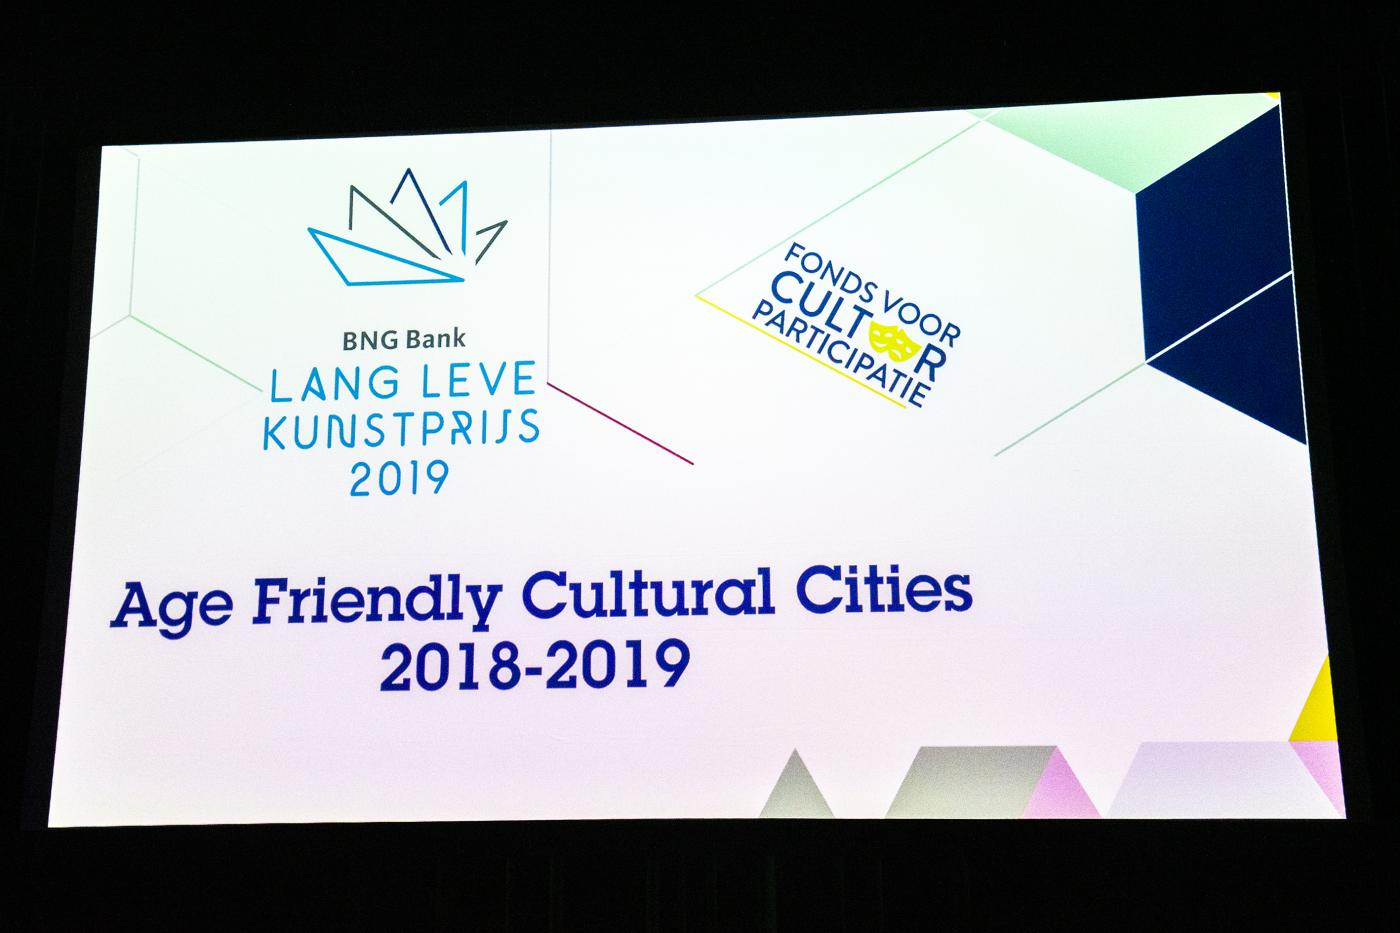 Slotmanifestatie Age Friendly Cultural Cities 2018=2019. Wie wordt de winnaar?